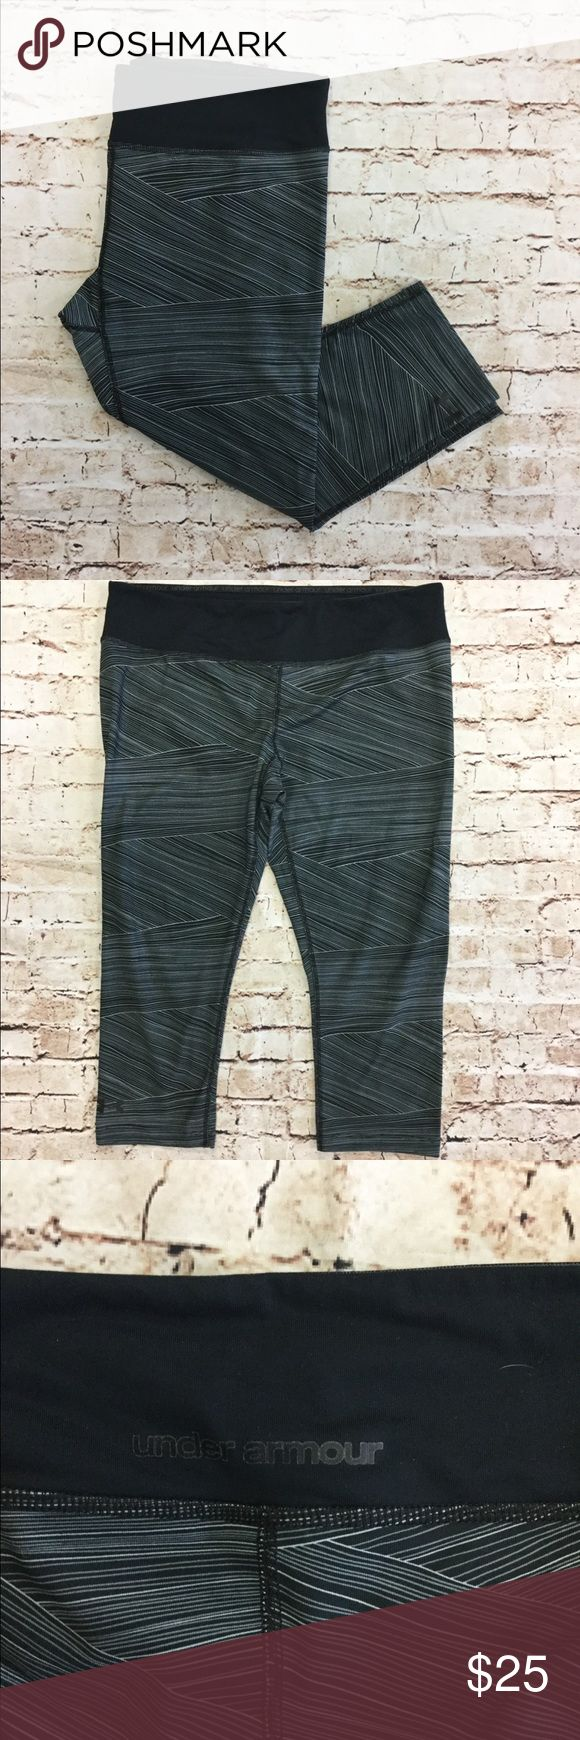 """Under Armour Striped Capri Leggings Black, grey and white capri leggings from Under Armour, size large.  Cannot be modeled. All garments come from a smoke-free home and have no flaws unless stated above. Feel free to ask any questions or make offers!  Approximate Measurements:      Out seam- 27""""     In seam- 18""""     Waist- 16"""" Under Armour Pants Leggings"""